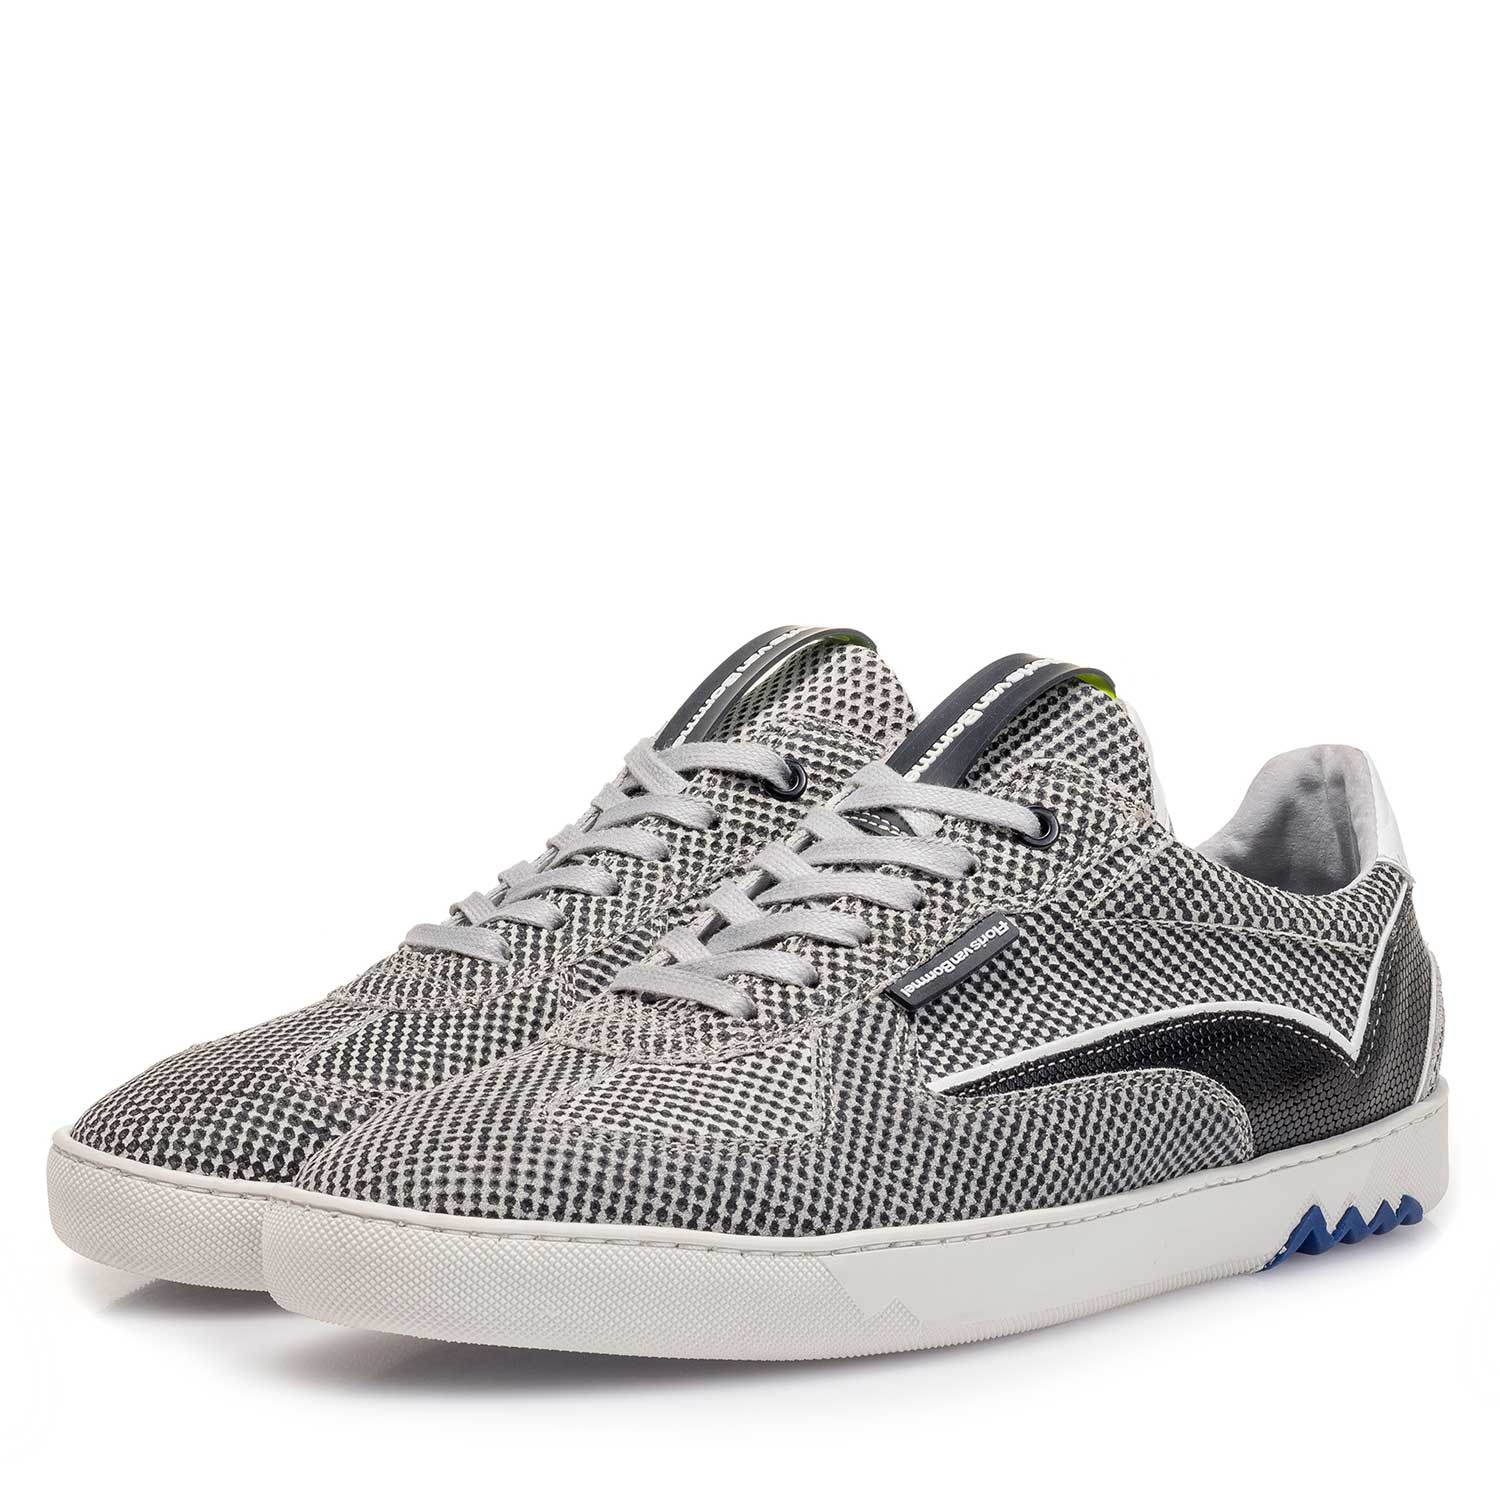 16342/00 - Grey suede leather sneaker with a print